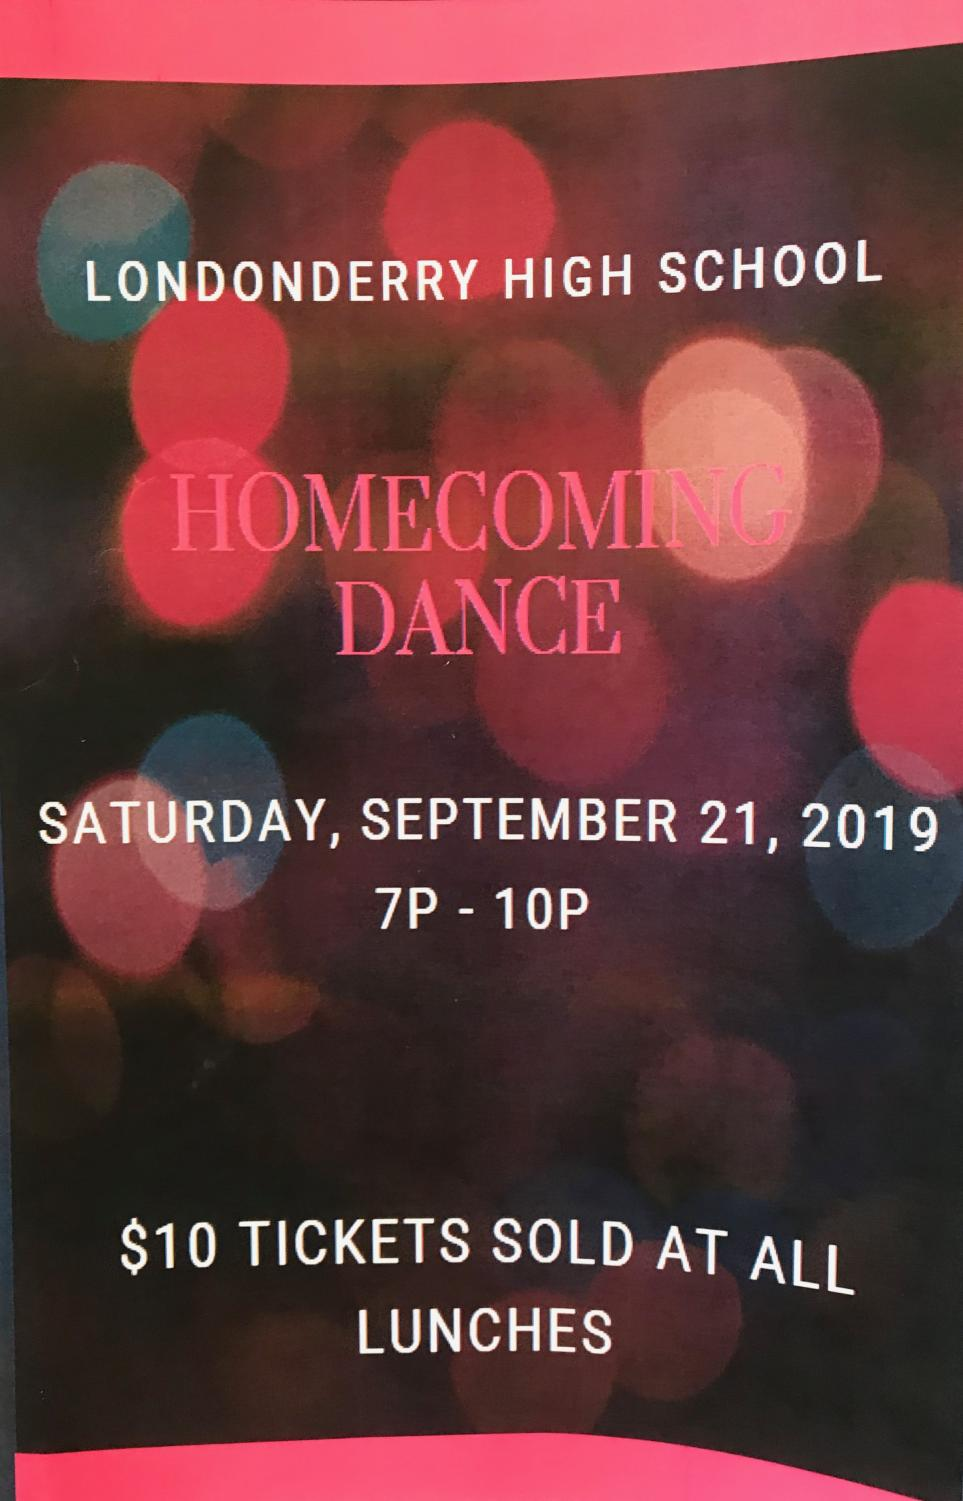 Homecoming will be held at LHS at 7 on Sept. 21.